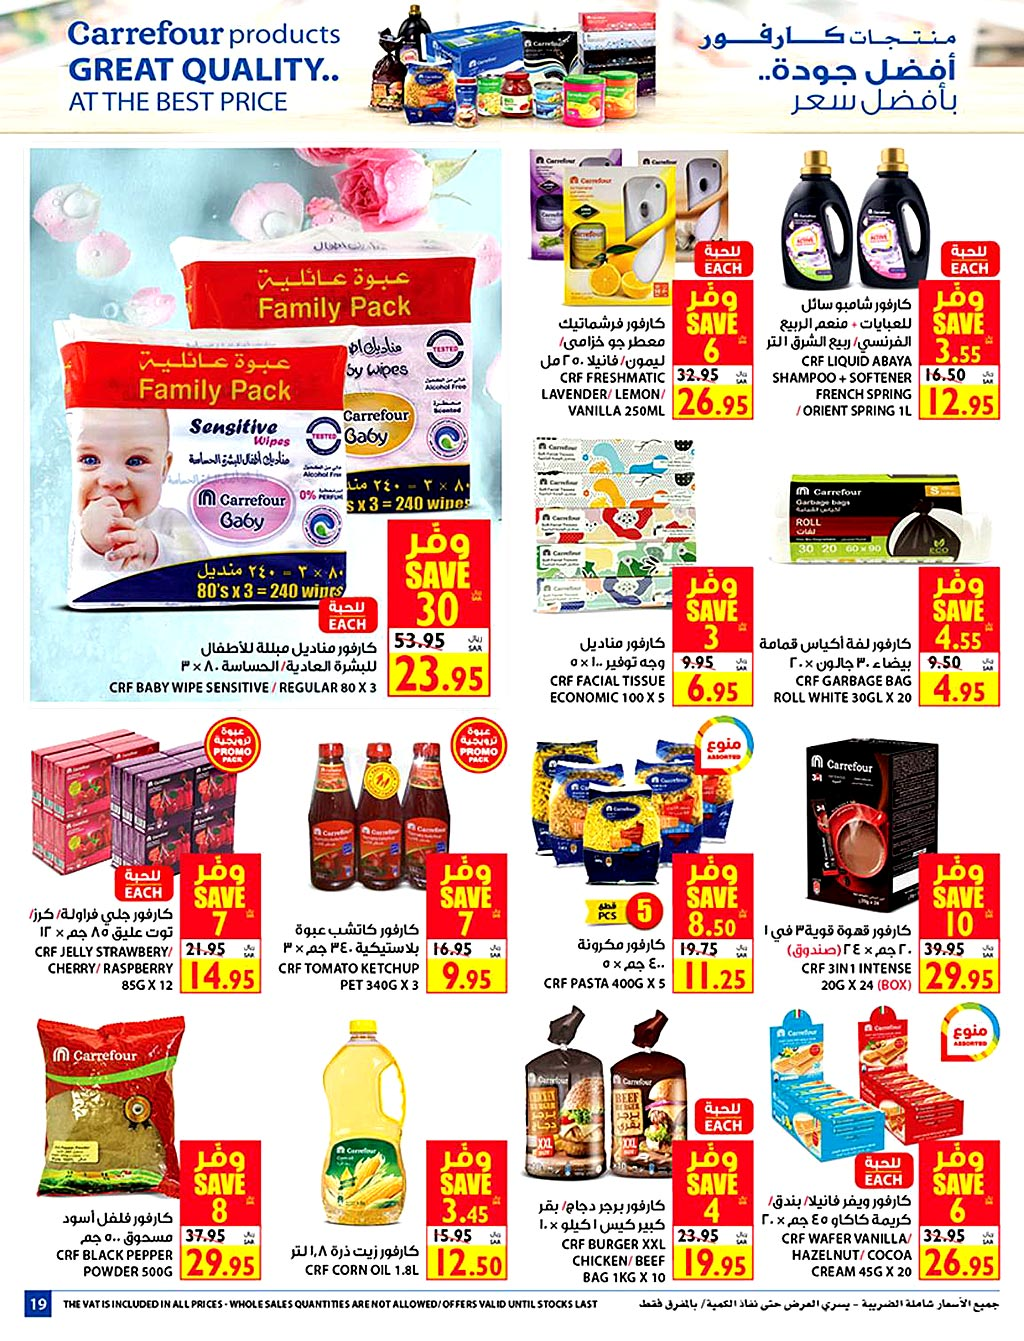 carrefour offers from 9sep to 22sep 2020 page number 18 عروض كارفور-السعودية من 9 سبتمبر حتى 22 سبتمبر 2020 صفحة رقم 18